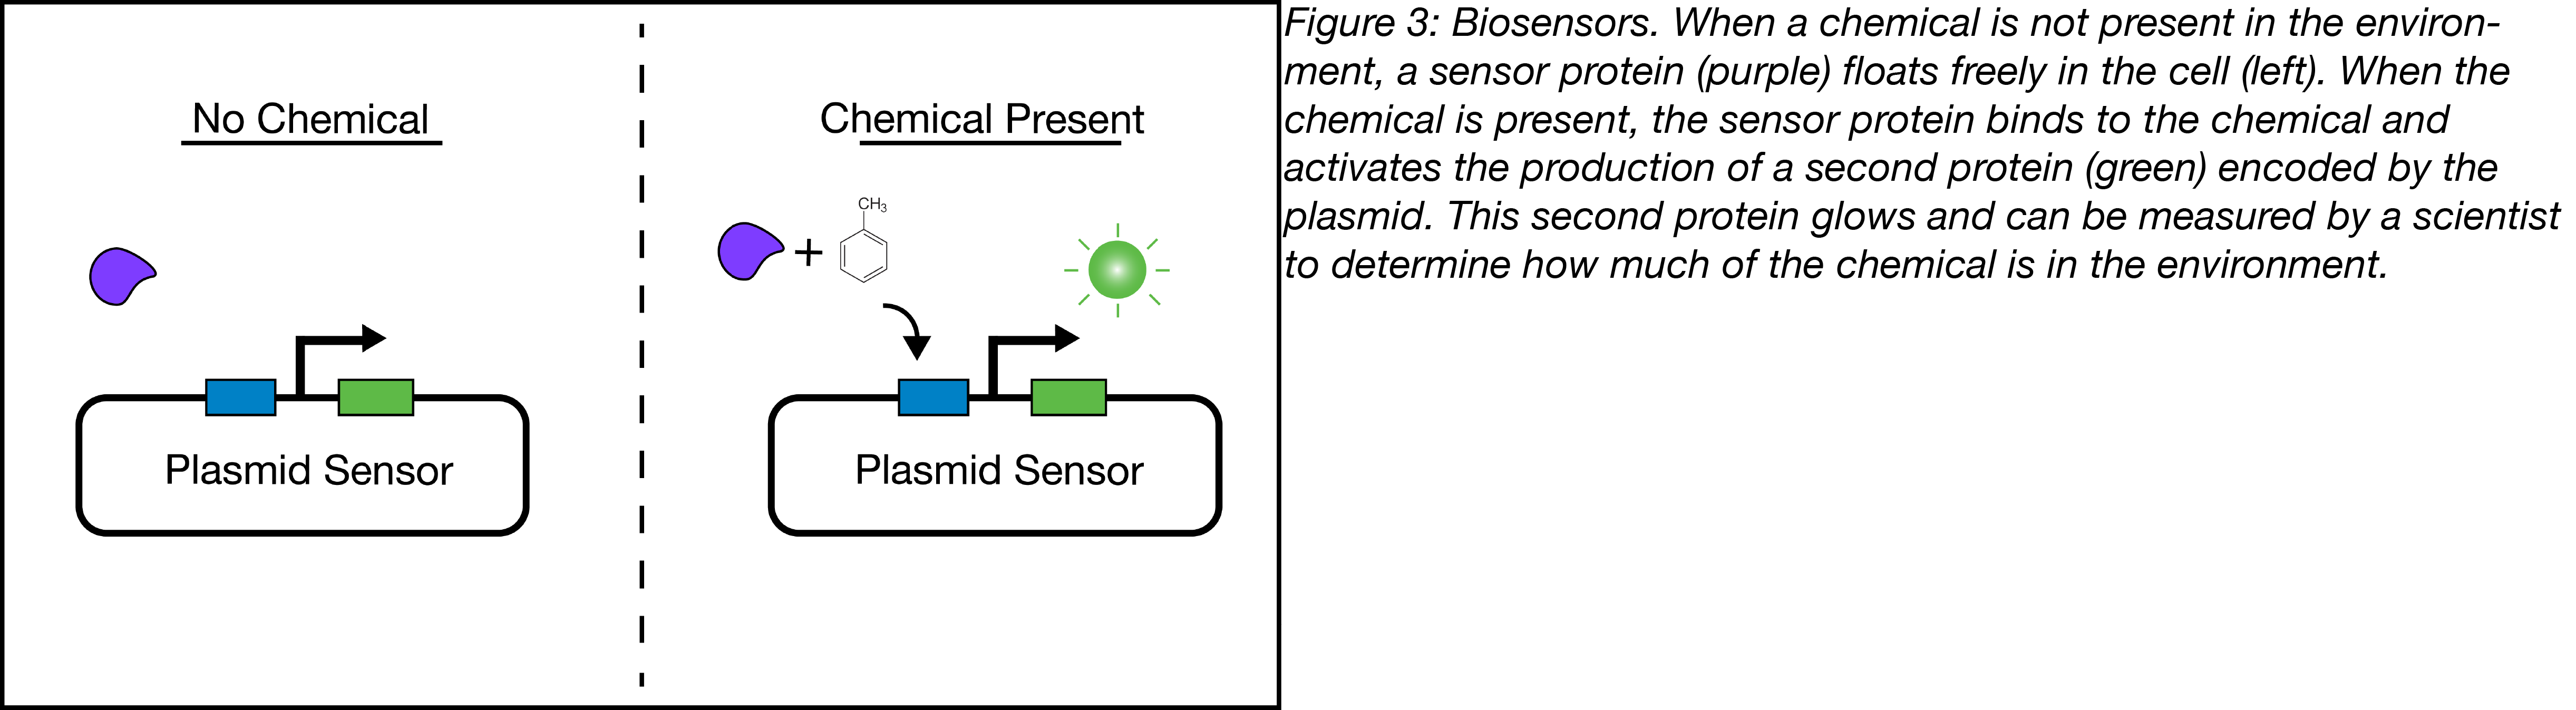 biosensors encoded on a plasmid